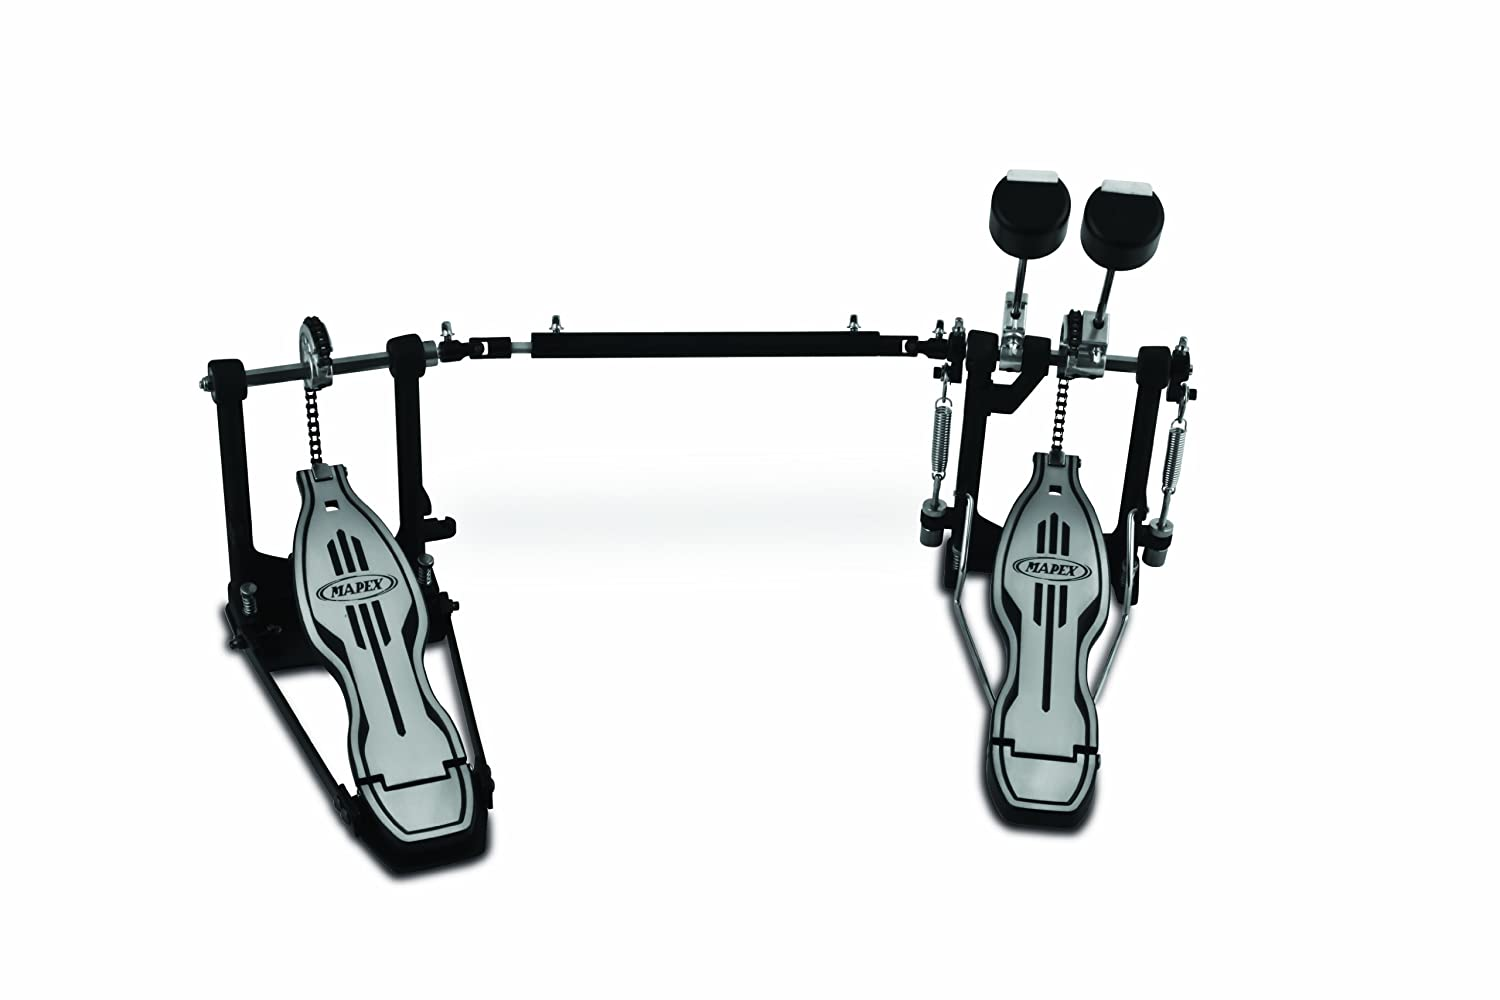 The Best Double Bass Drum Pedal 4